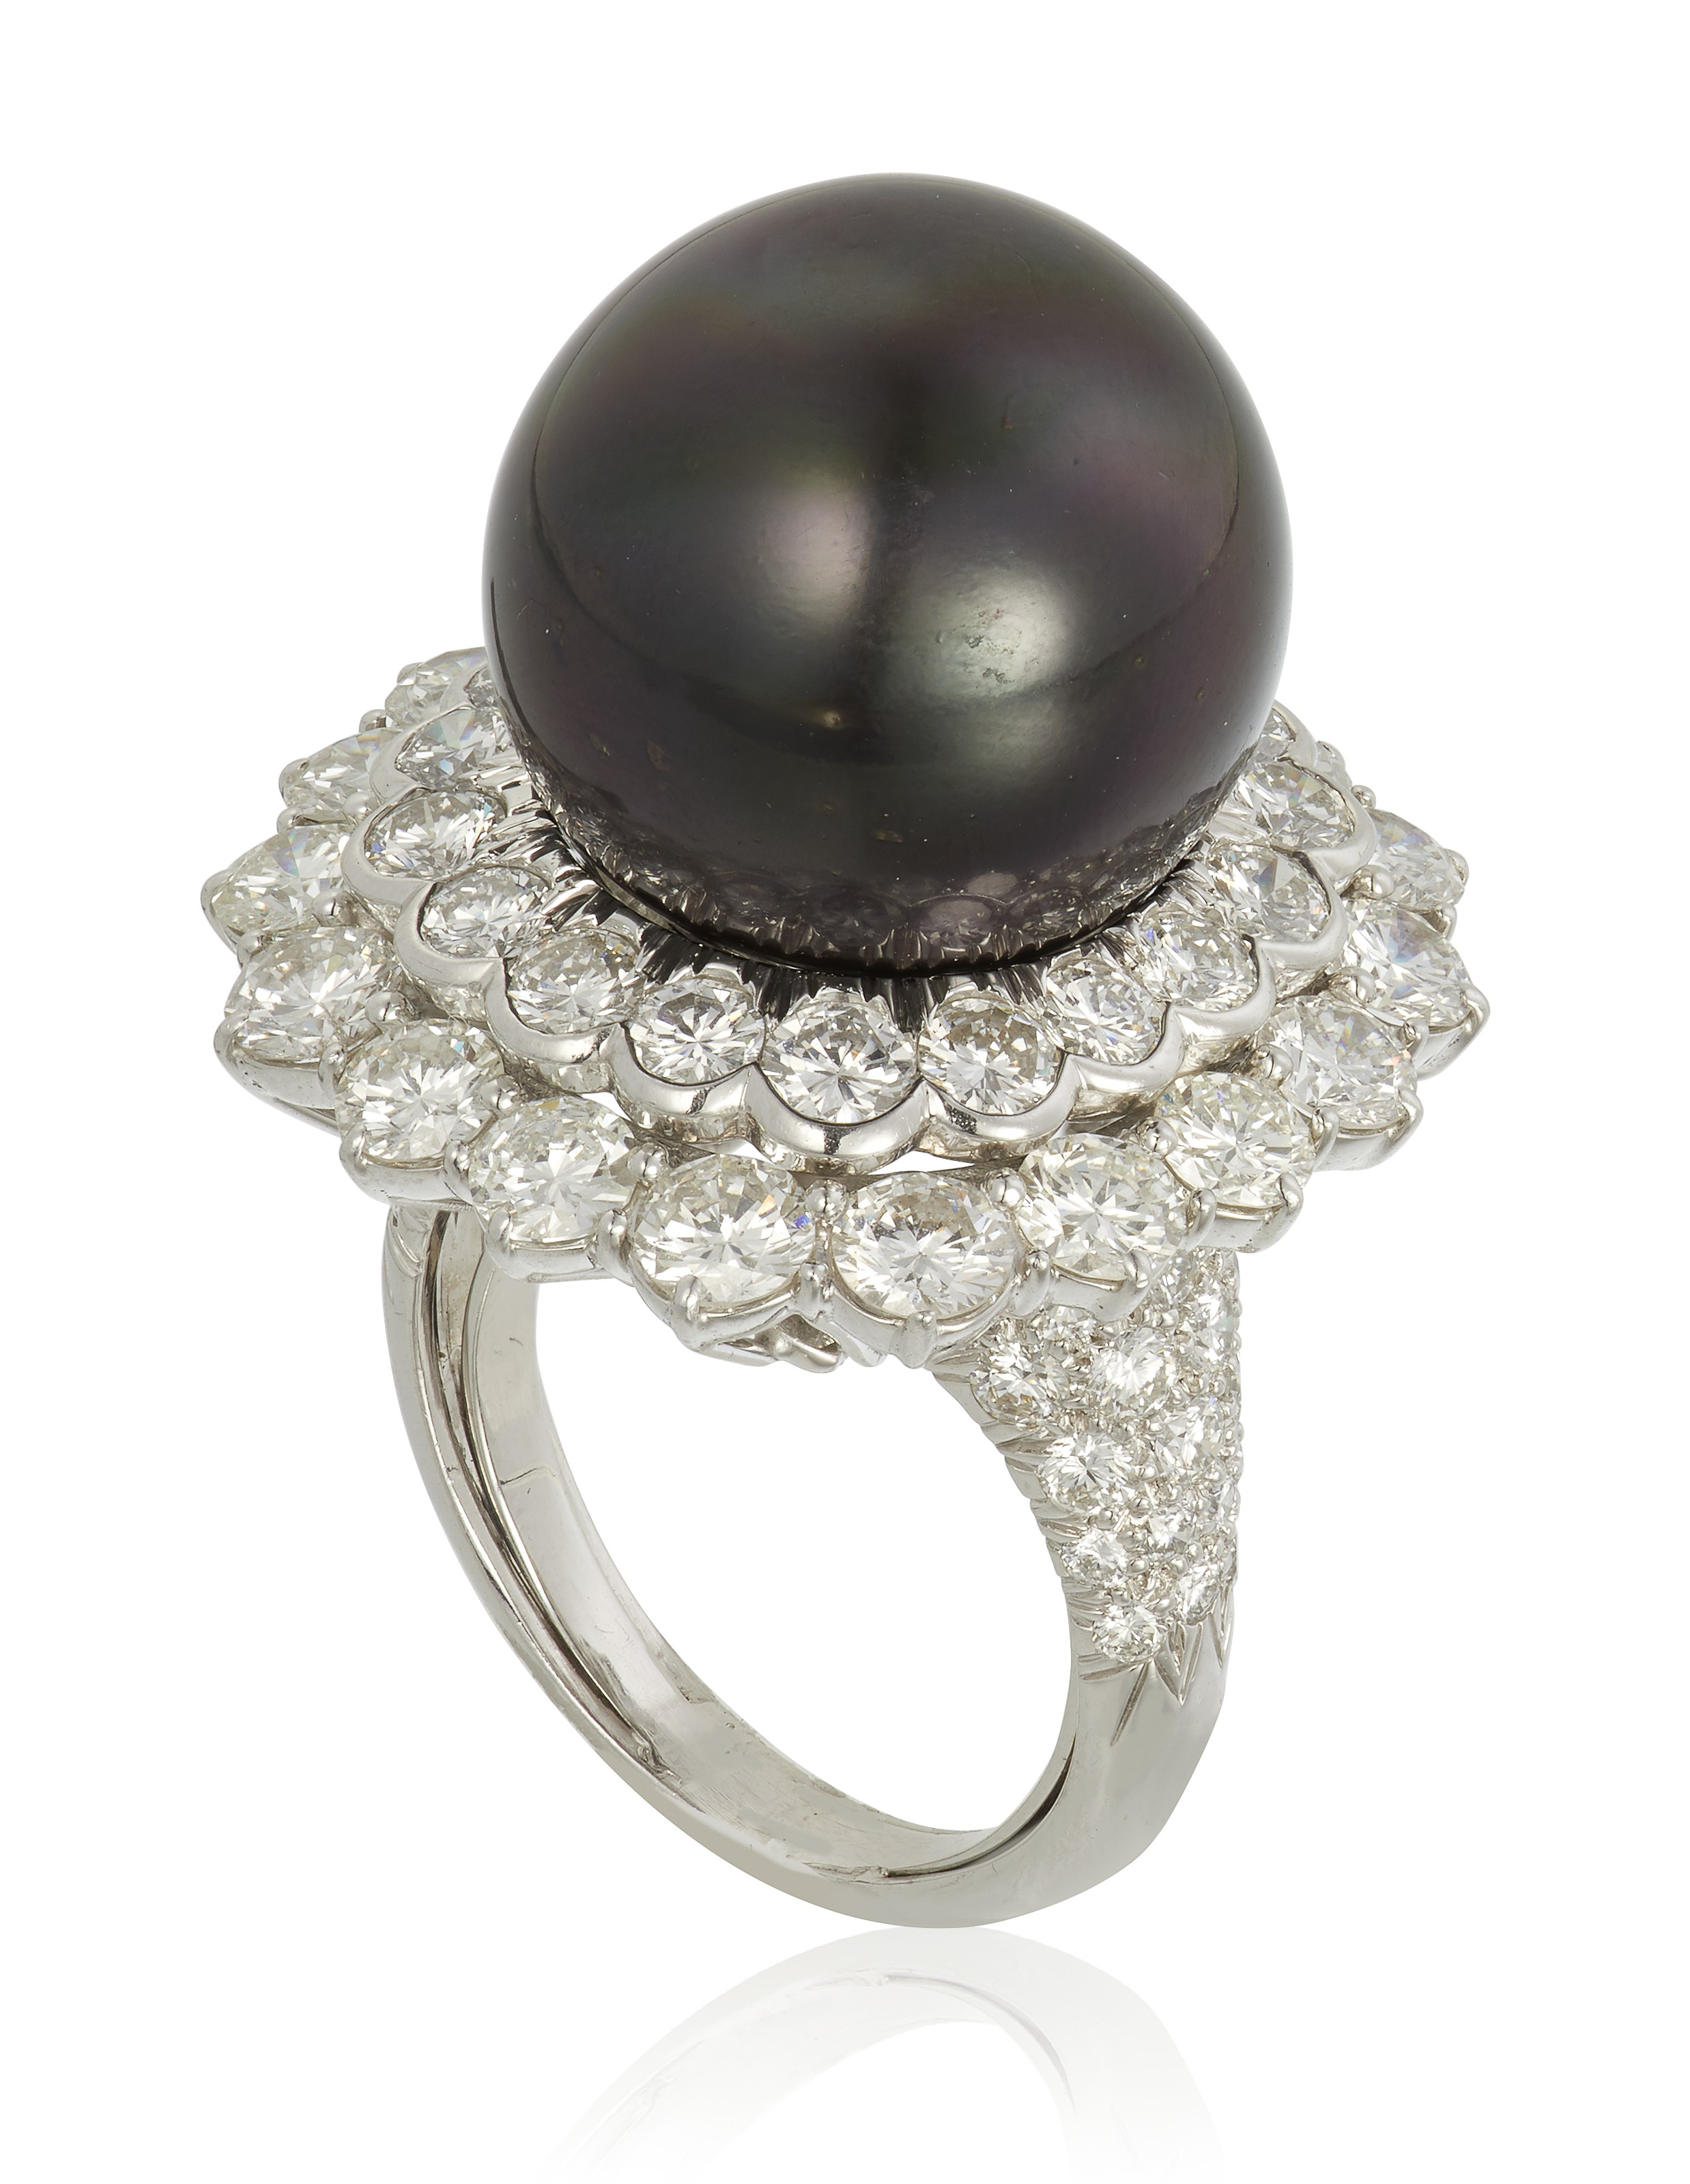 Cultured pearl and diamond ring, by David Webb. Sold for $10,000 on 10 February 2021, Online